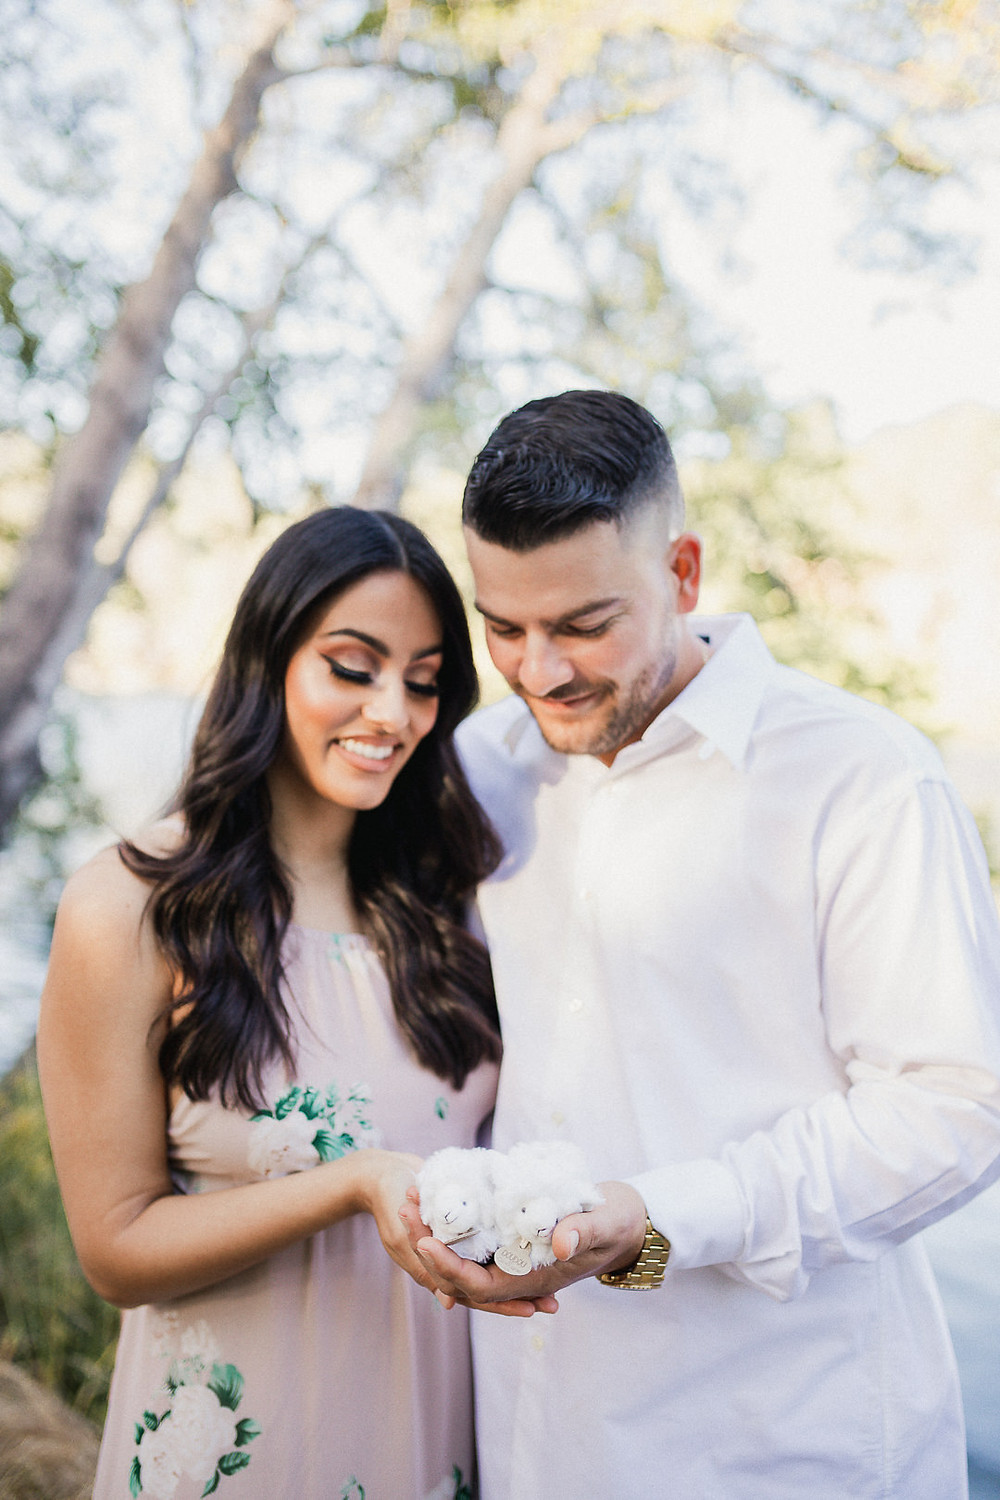 Victoria and Franky | Lake Gregory Maternity + Couple Session